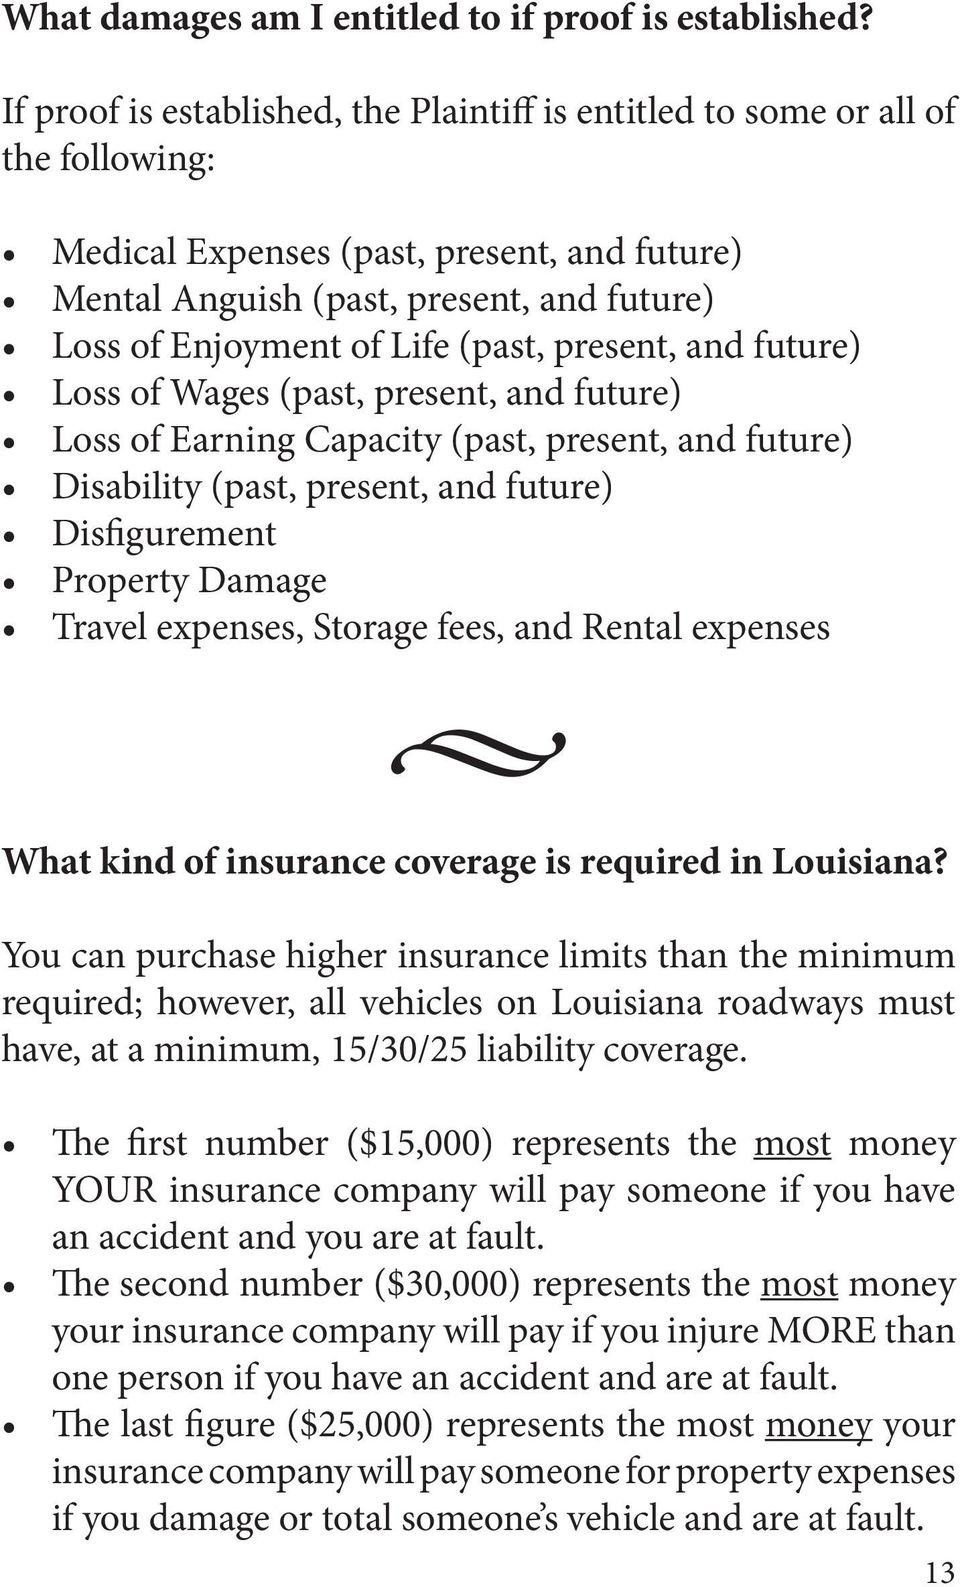 (past, present, and future) Loss of Wages (past, present, and future) Loss of Earning Capacity (past, present, and future) Disability (past, present, and future) Disfigurement Property Damage Travel